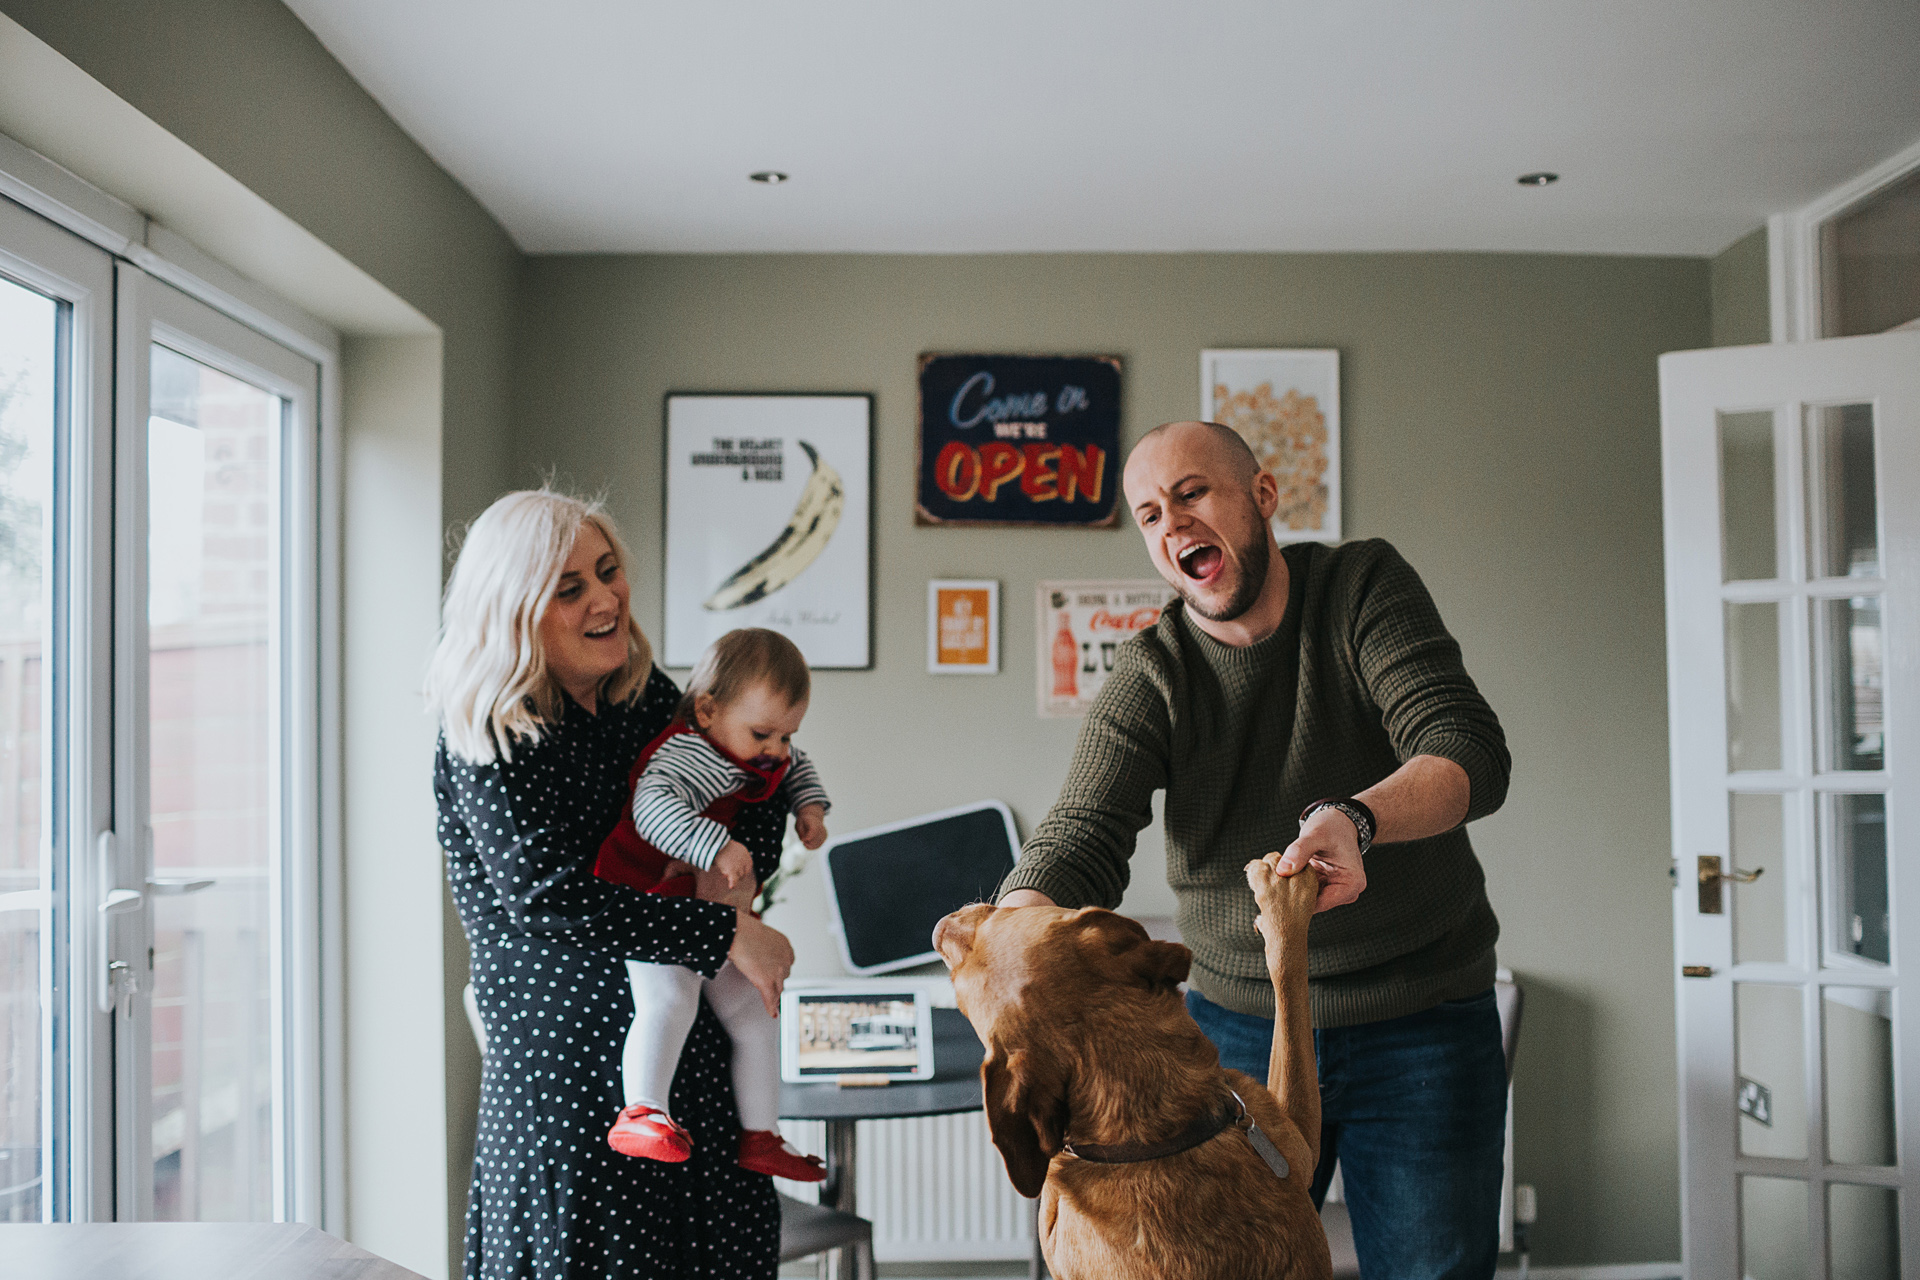 Family have a dance with the dog in the kitchen.